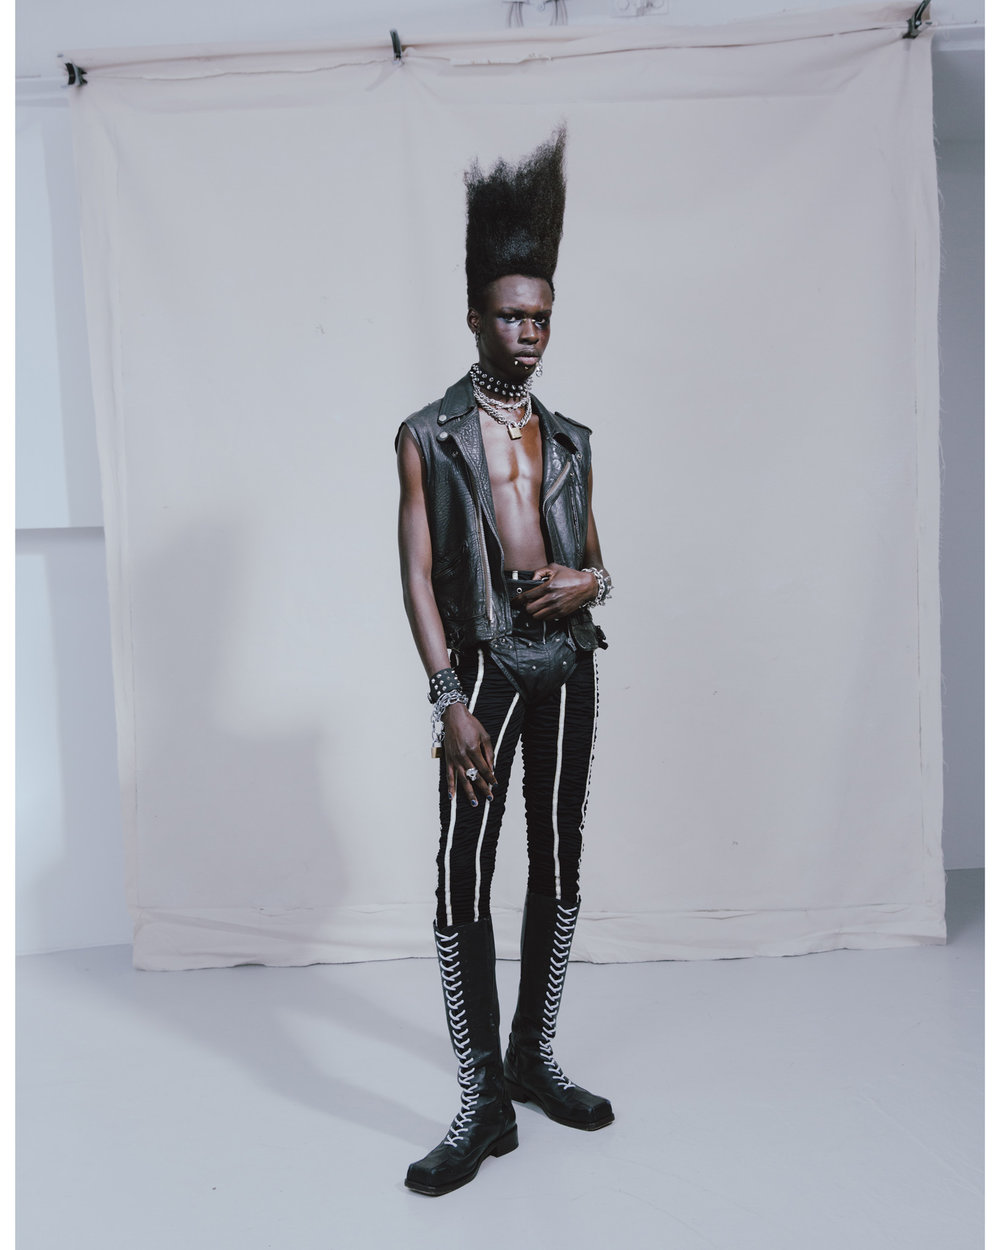 Emmanuel wears LEWIS LEATHERS ARCHIVE vest, RELLIK vintage briefs and belt, EDUN leggings, GIVENCHY hoop earring with cross, MOWALOLA chain earring, stylist's own choker, SLIM BARRETT chain necklace (with added safety pins), CONTEMPORARY WARDROBE padlock necklace, UNDERGROUND cuffs, NORTHSKULL ring, CHARLES JEFFREY LOVERBOY boots.